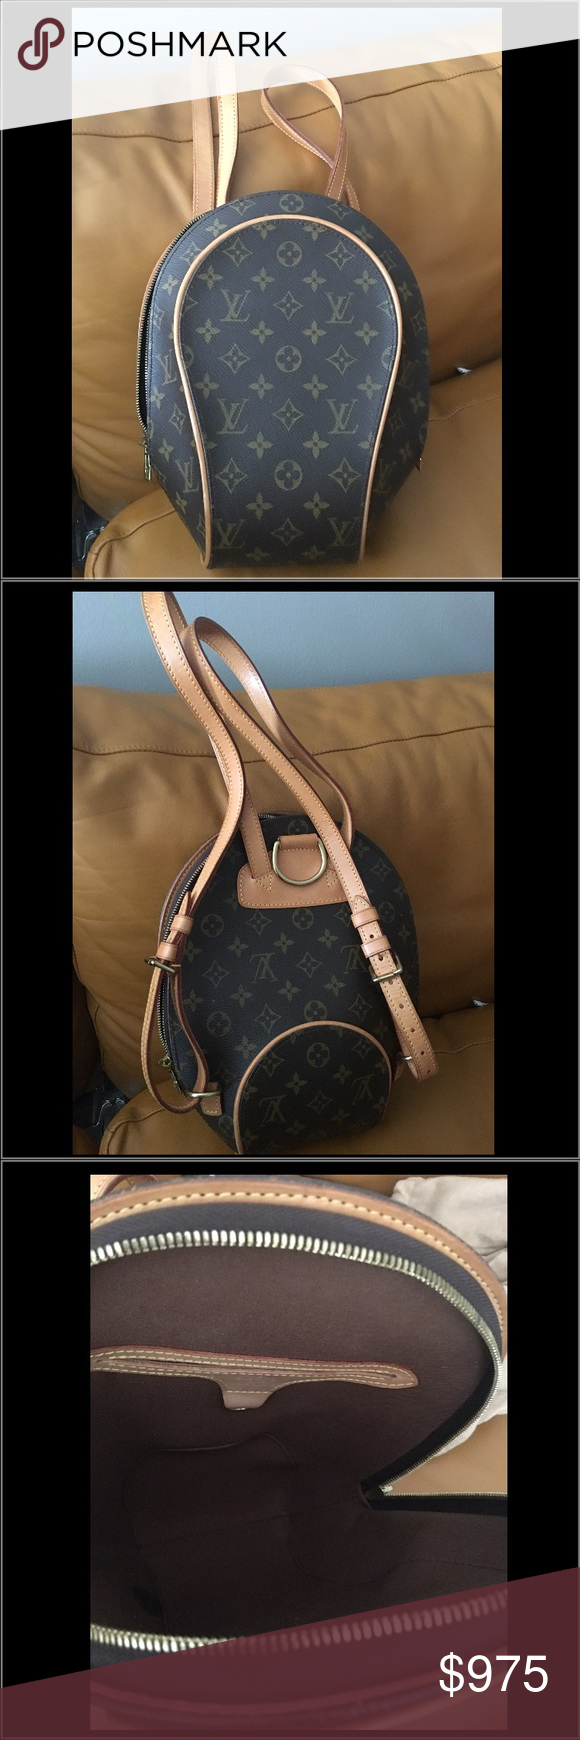 f2592dcee844 Louis Vuitton Mabillon Backpack Designer  Louis Vuitton Monogram Mabillon  Handbag. 100% Authentic.